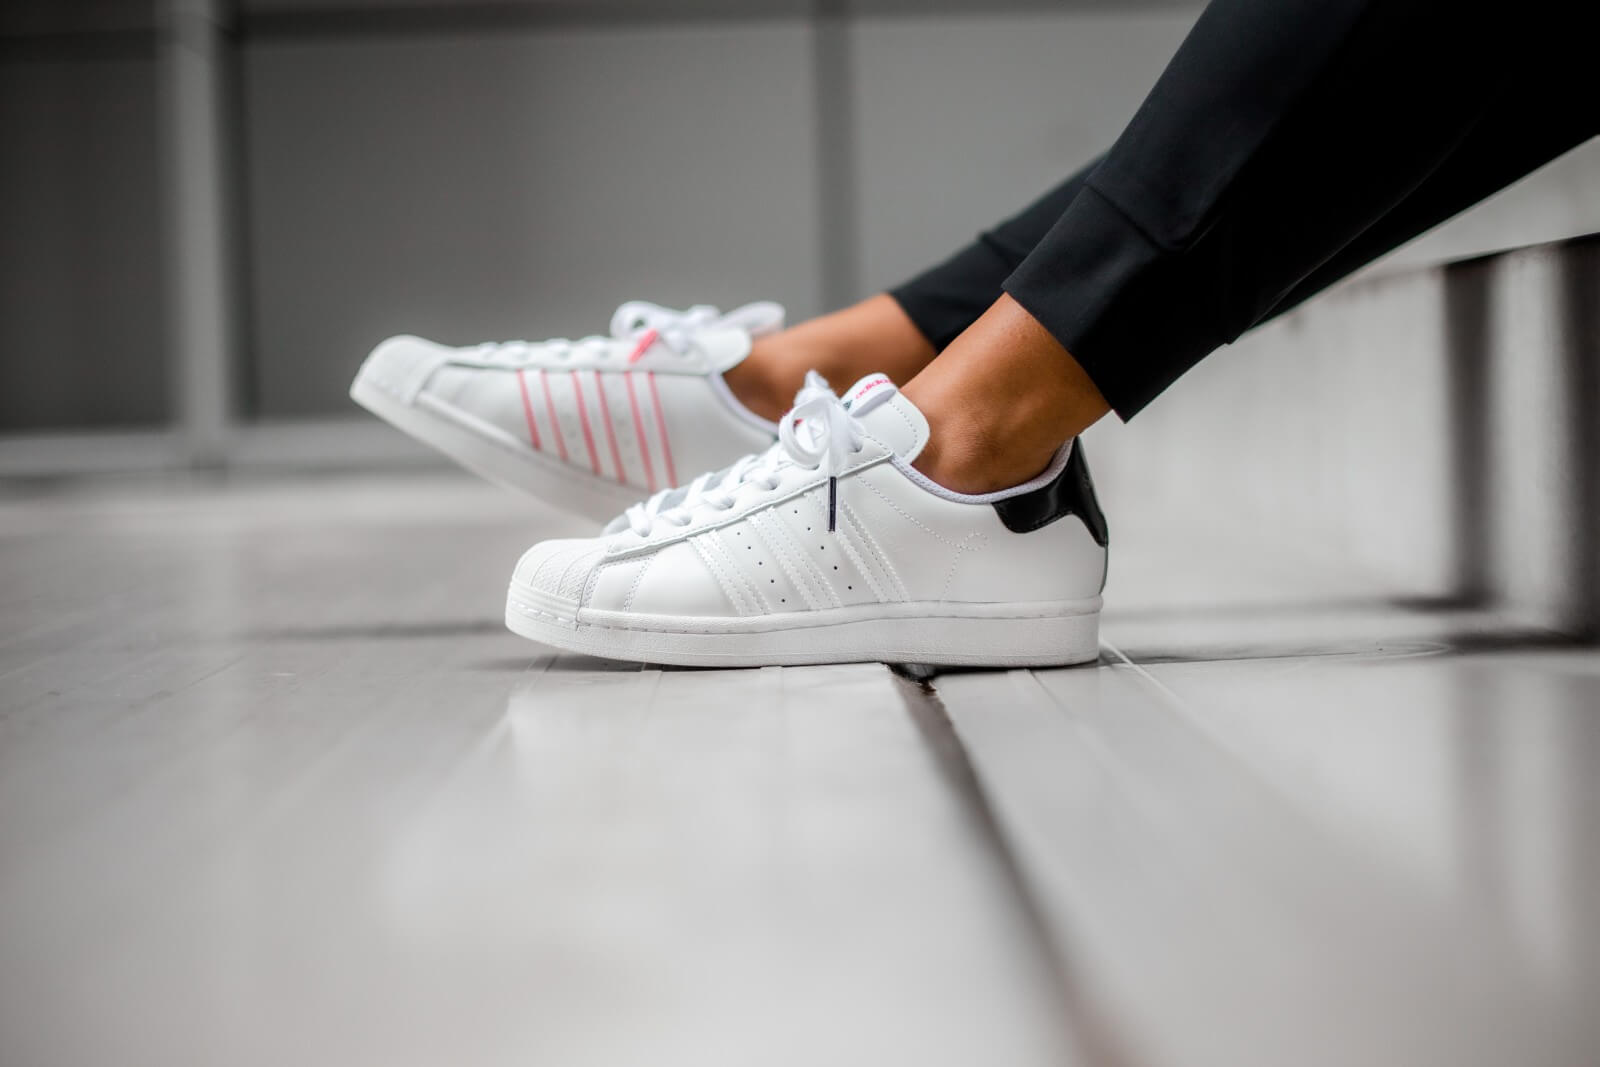 Adidas Superstar Adidas Superstar Shanghai Footwear White/Core Black-Shock Pink ...